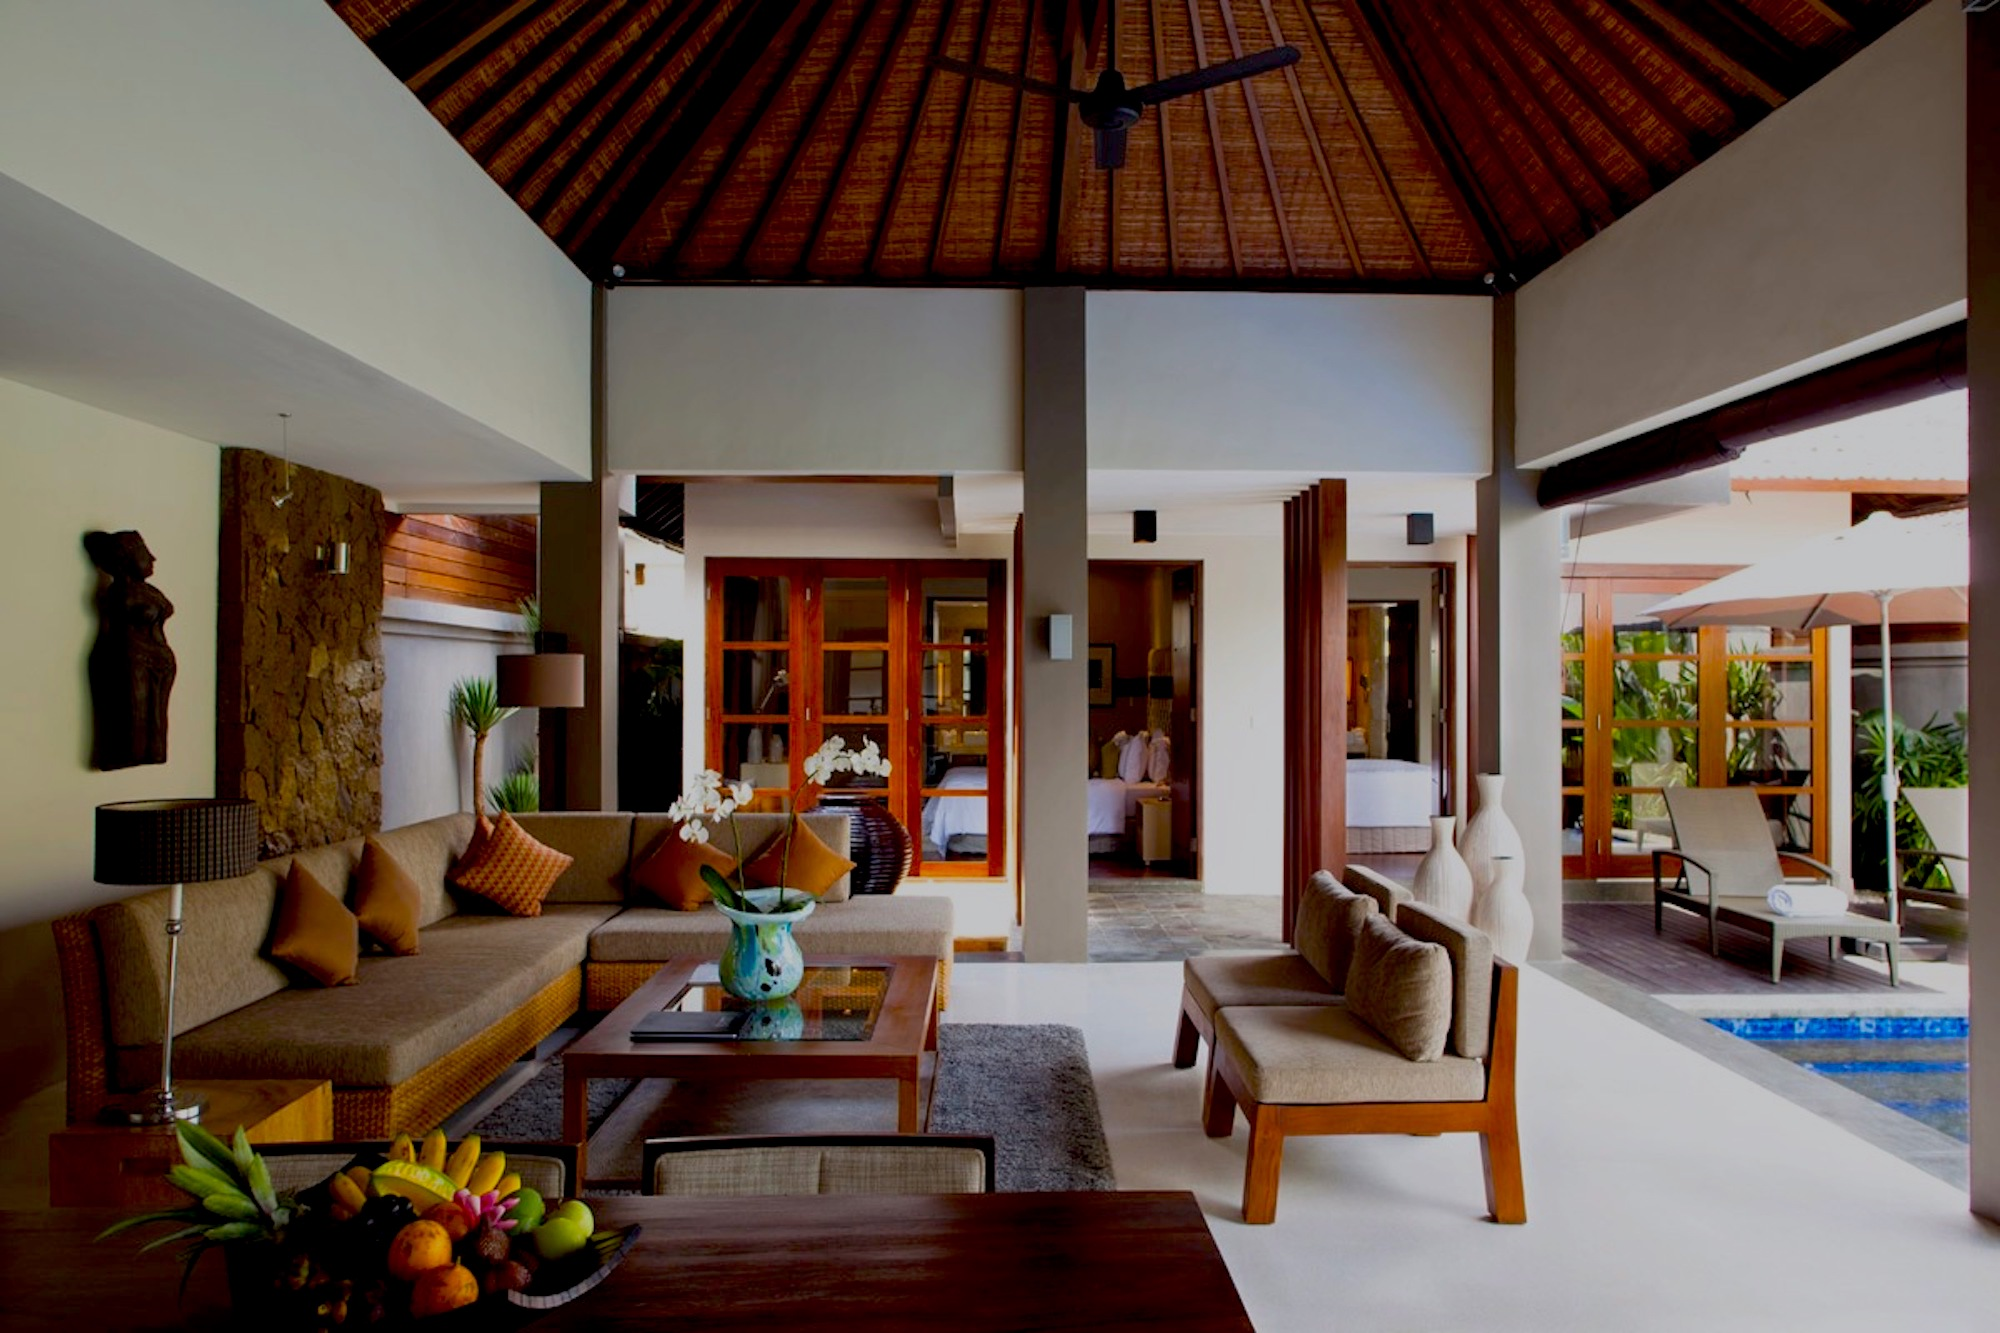 Akara Villas 1 – Stylish Gem in the Heart of the Action